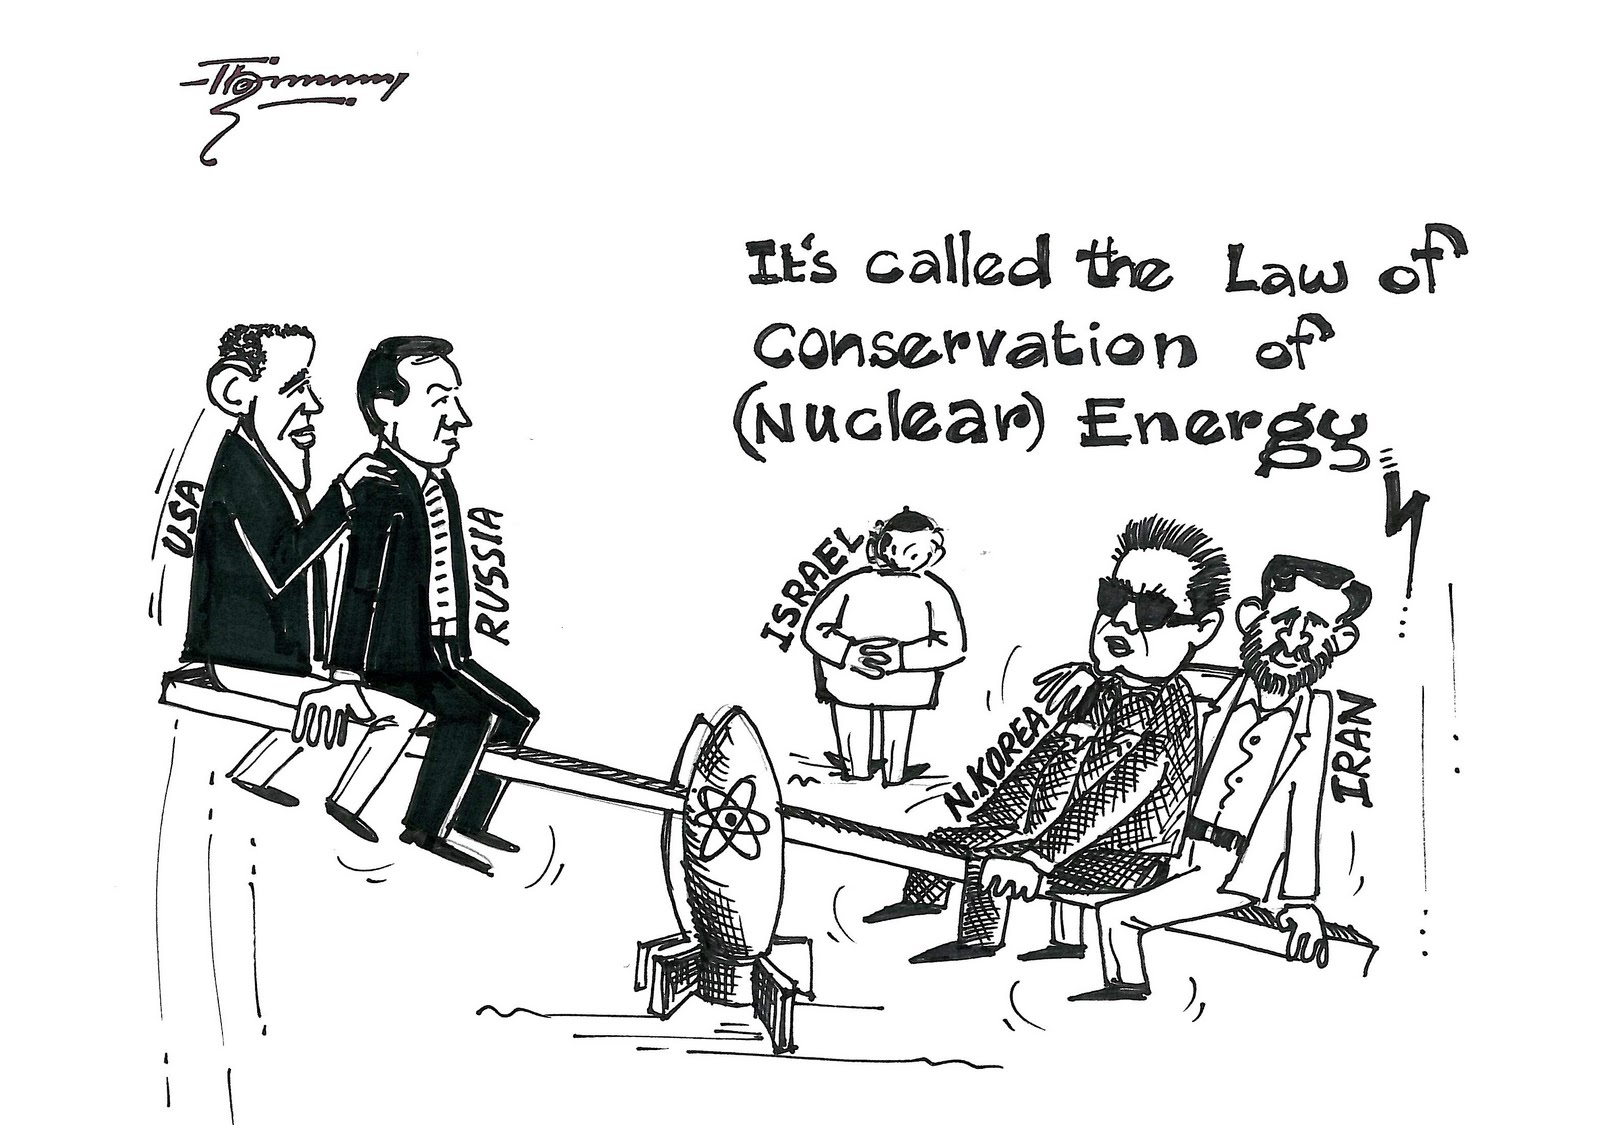 Drawn Opinions The Law Of Conservation Of Nuclear Energy